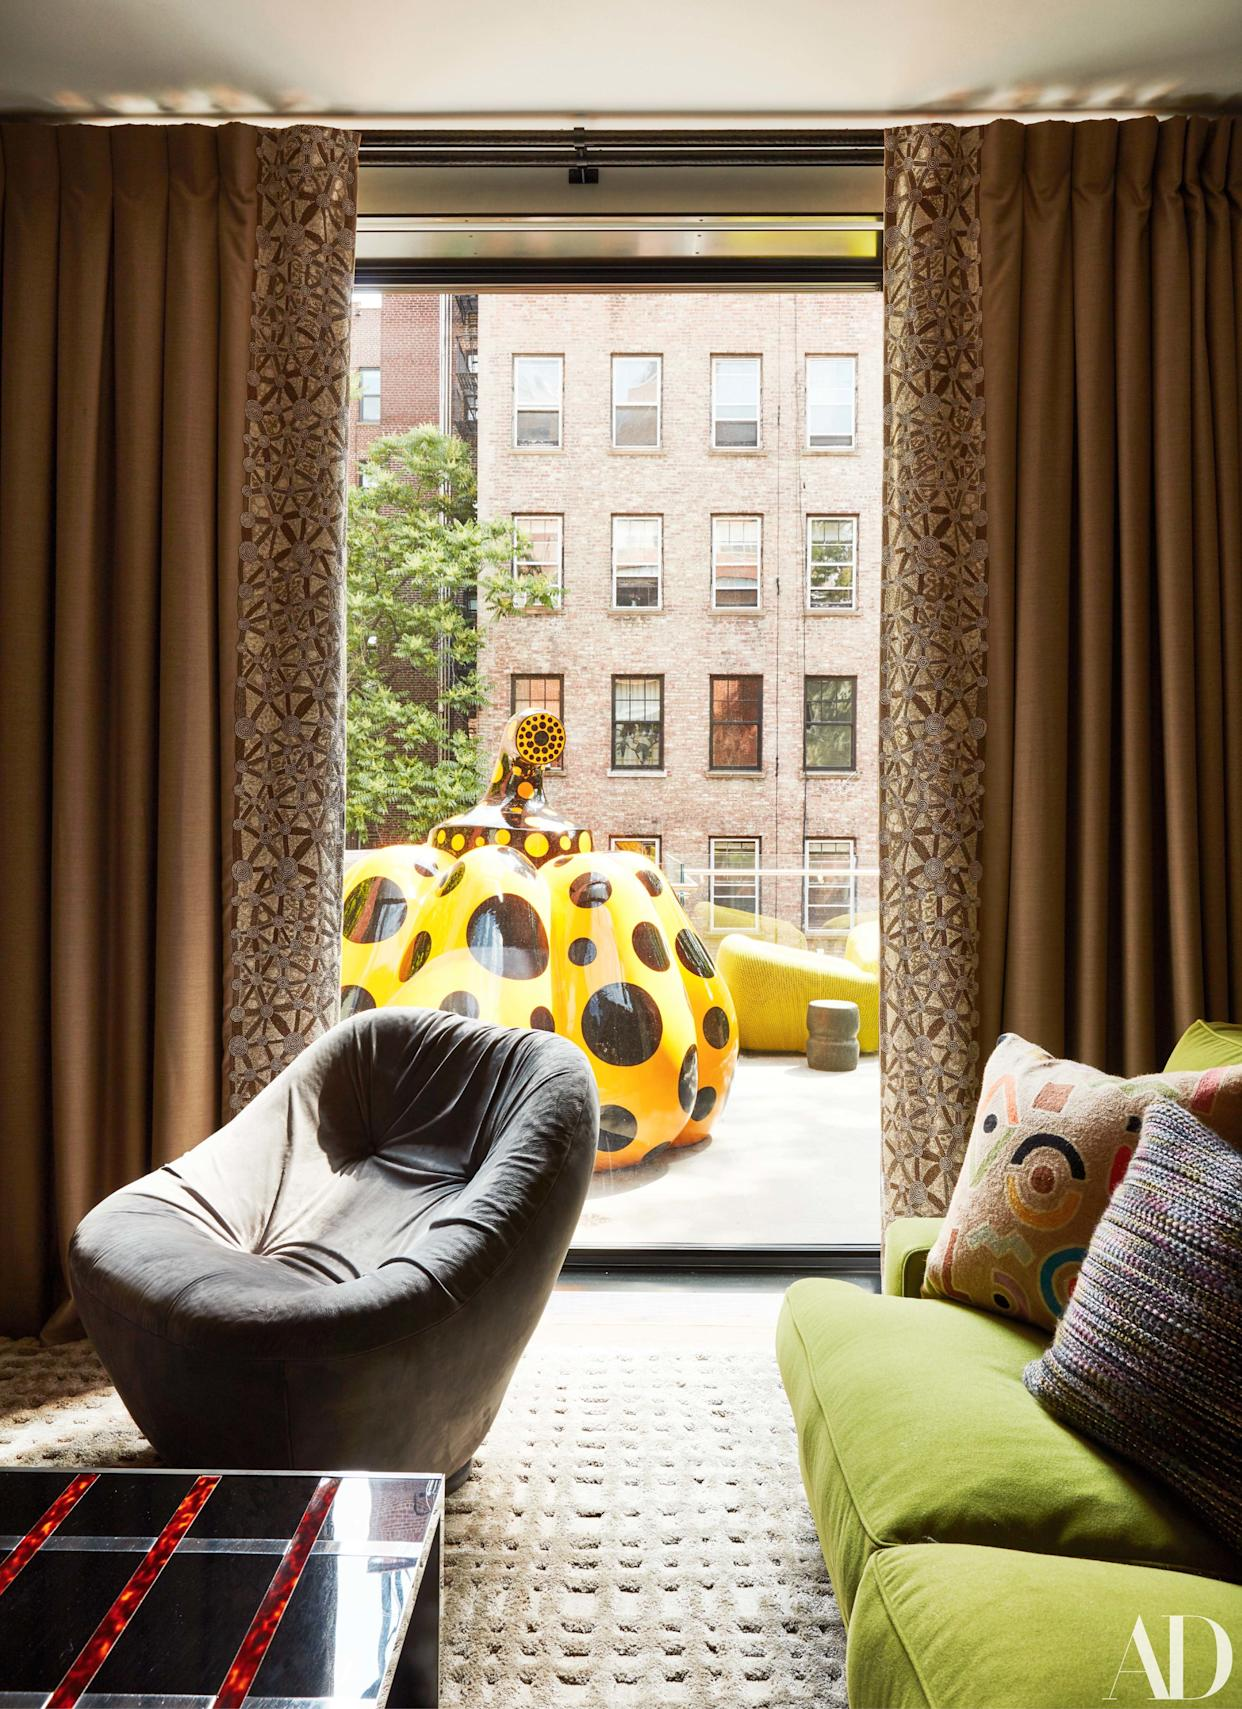 """<div class=""""caption""""> A pumpkin sculpture by Yayoi Kusama sits on a terrace outside the family room. </div>"""